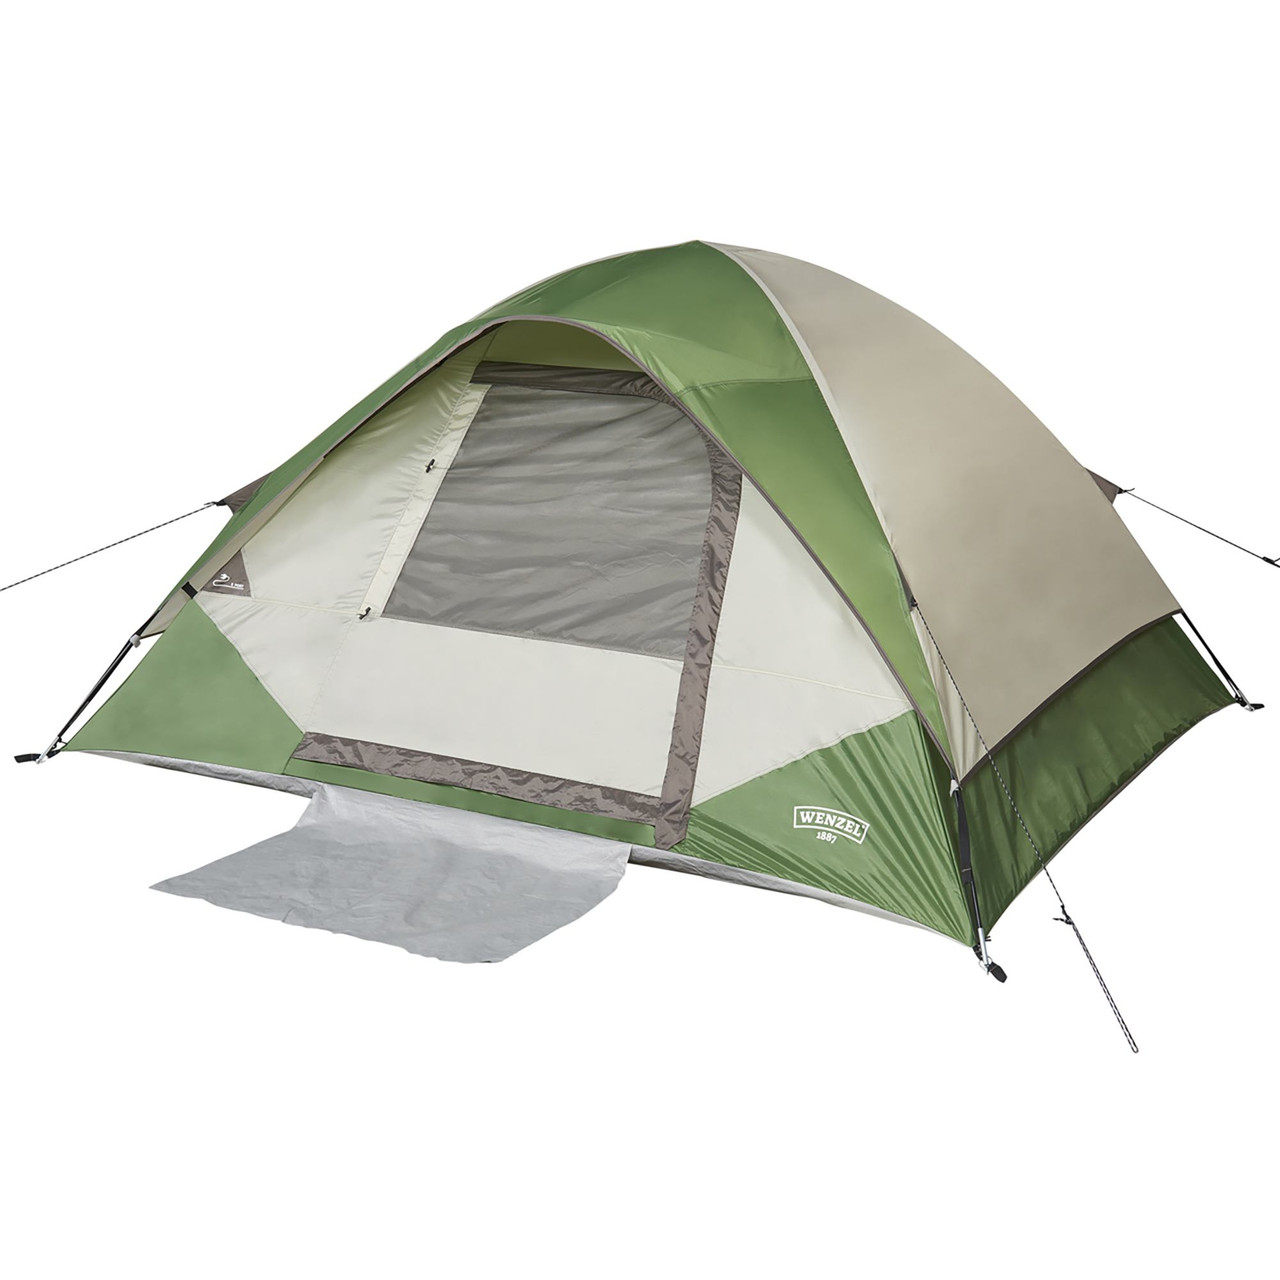 Wenzel Jack Pine 4 Person Dome Tent, green/white, front view, with fly attached